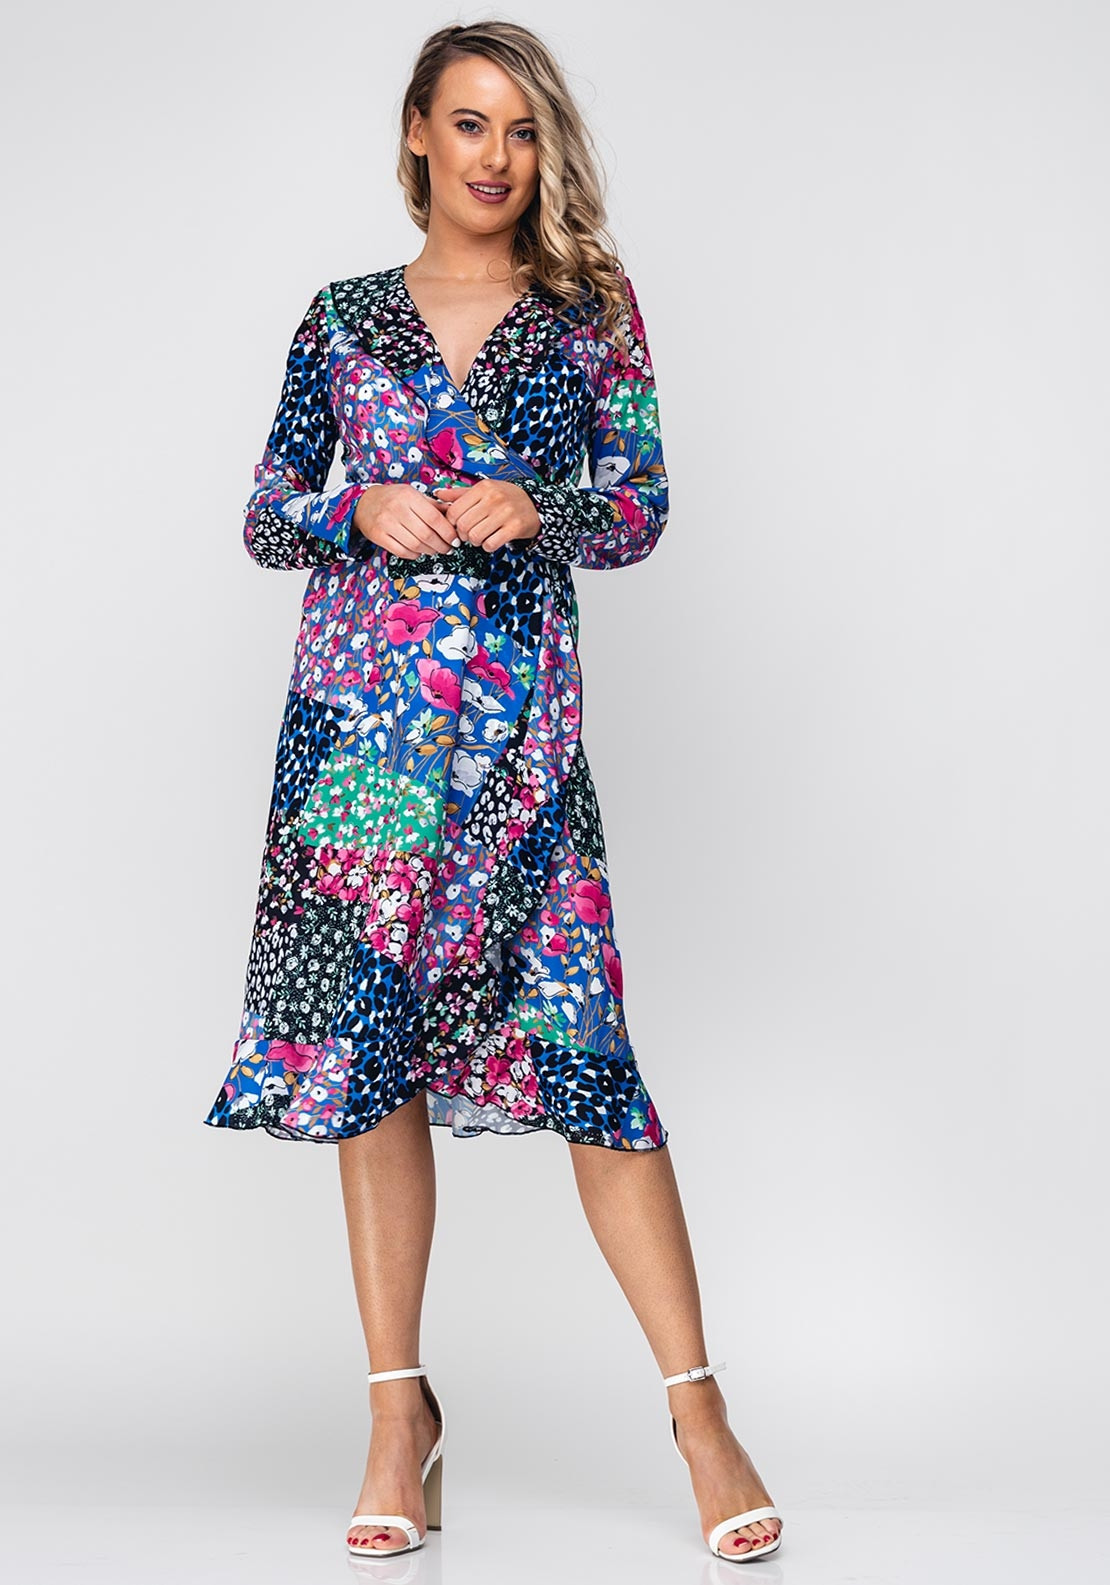 380f0df14122 Seventy1 Patchwork Flower Wrap Dress, Multi. Be the first to review this  product